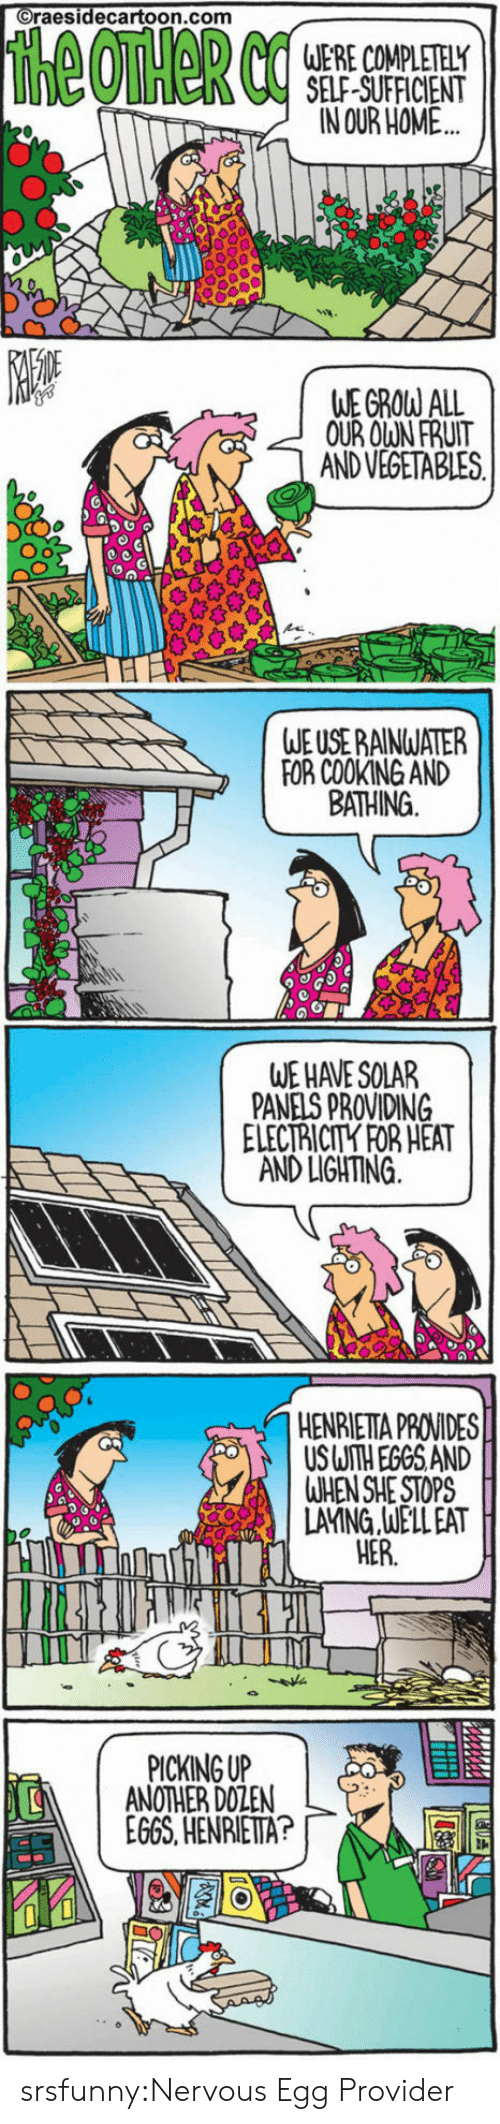 Tumblr, Blog, and Heat: raesidecartoon.com  SELF SUFFICIENT  IN OUR HOME  WE GROW ALL  OUR OWN FRUIT  AND VEGETABLES  Oo  WE USE RAINWATER  FOR COOKING AND  BATHING  WE HAVE SOLAR  PANELS PROVIDING  ELECTRICITY FOR HEAT  AND LIGHTING  HENRIETTA PROVIDES  USUTH EGGS AND  WHEN SHE STOPS  LAYNG.JELLEAT  HER.  PICKINGUP  ANOTHER DOZEN  EGGS,HENRIETA?  鬥 srsfunny:Nervous Egg Provider